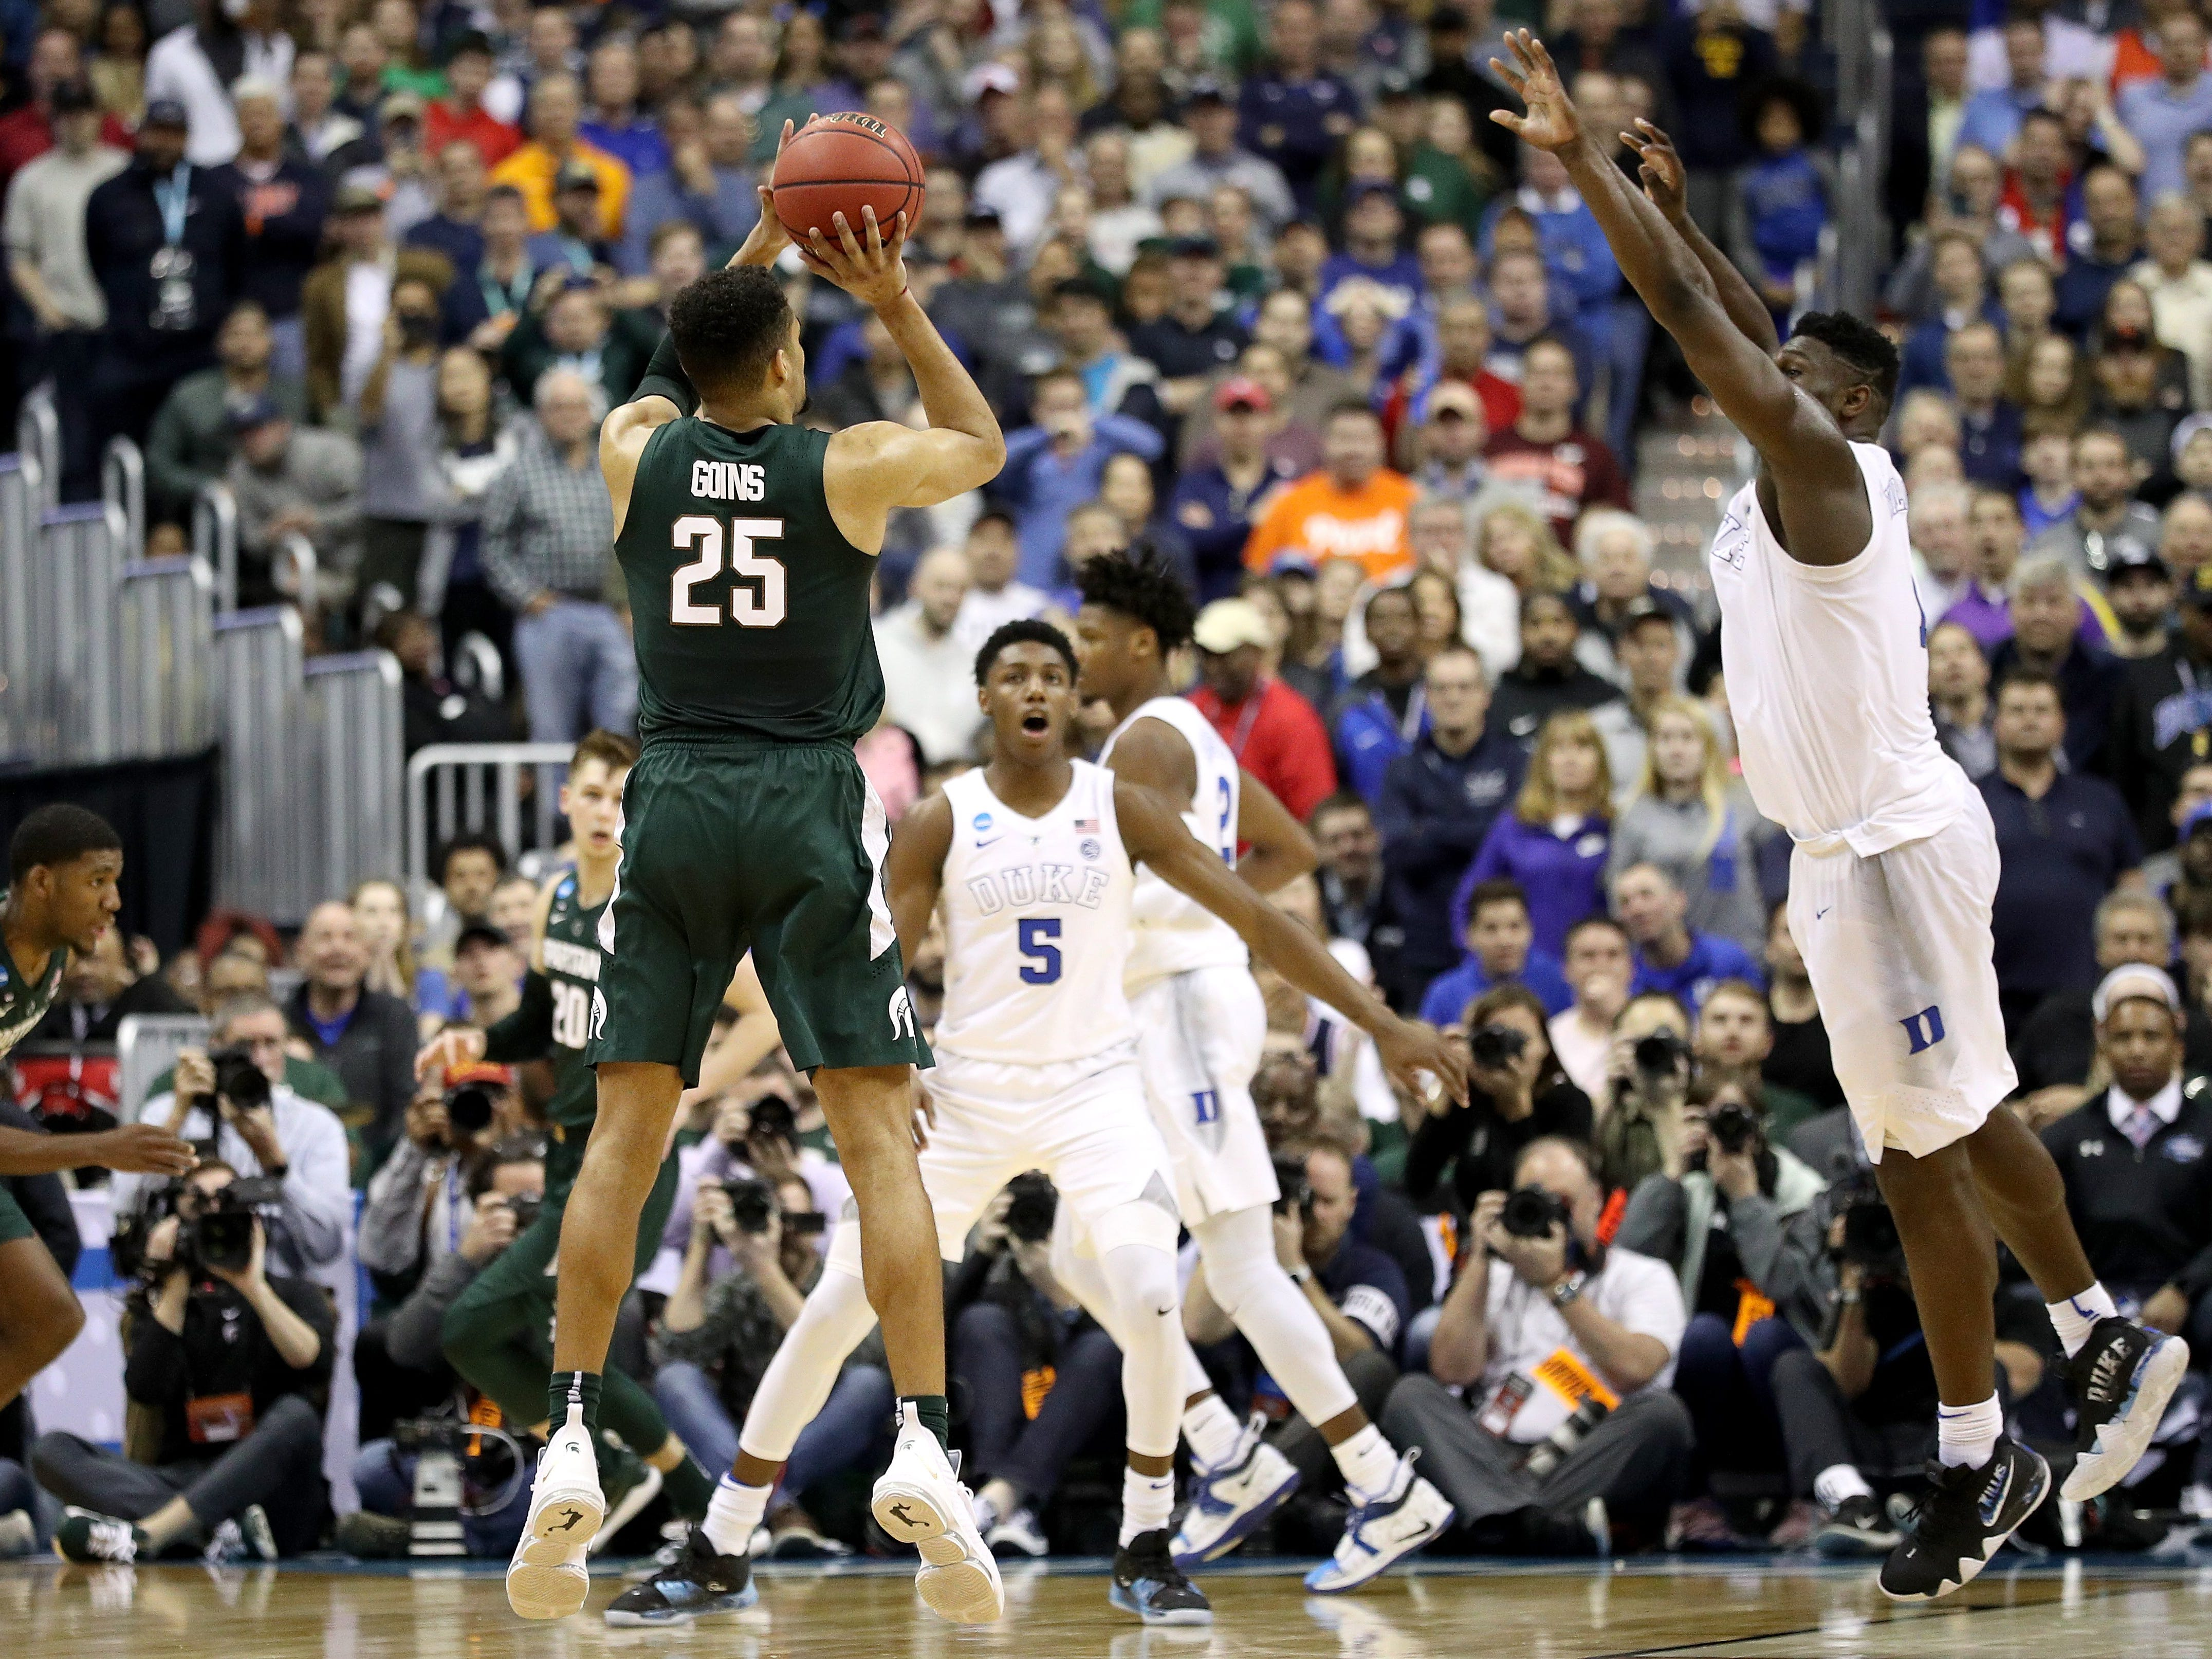 Michigan State's Kenny Goins hits the go-ahead 3-pointer late in the game over Duke's Zion Williamson in the East Regional of the NCAA tournament at Capital One Arena on March 31, 2019 in Washington, D.C.